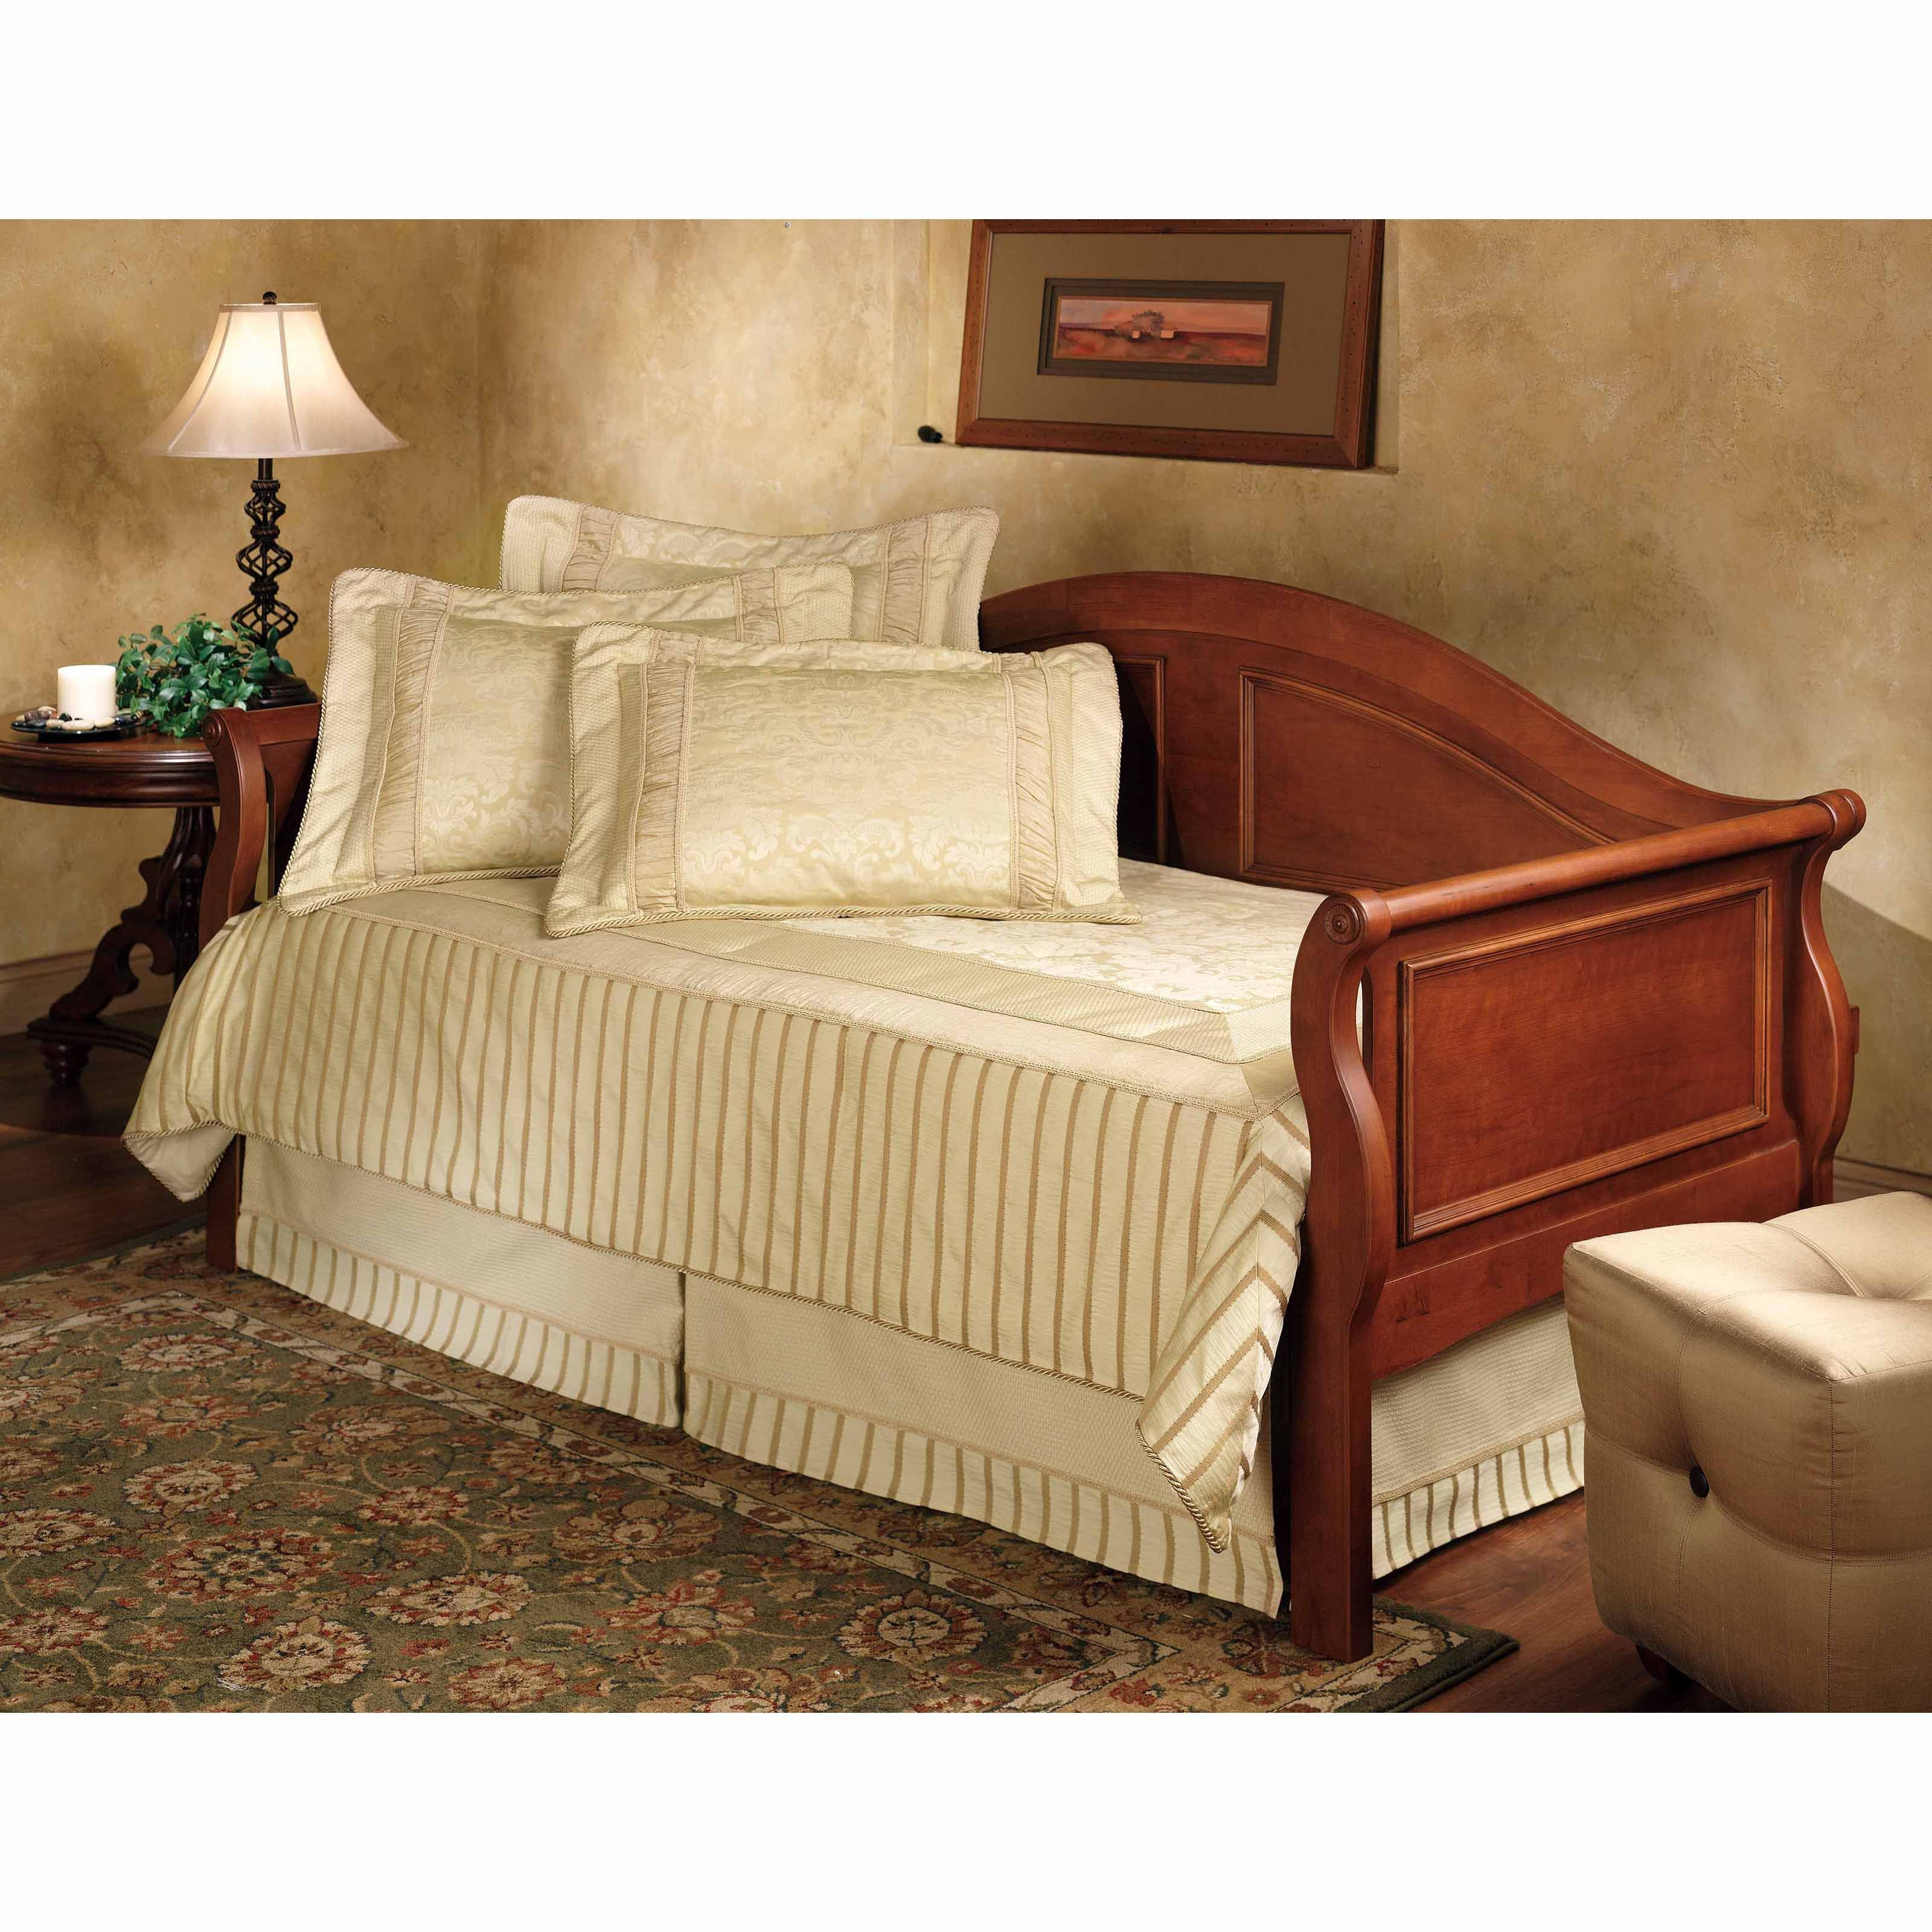 Hillsdale Bedford Daybed Wood daybed